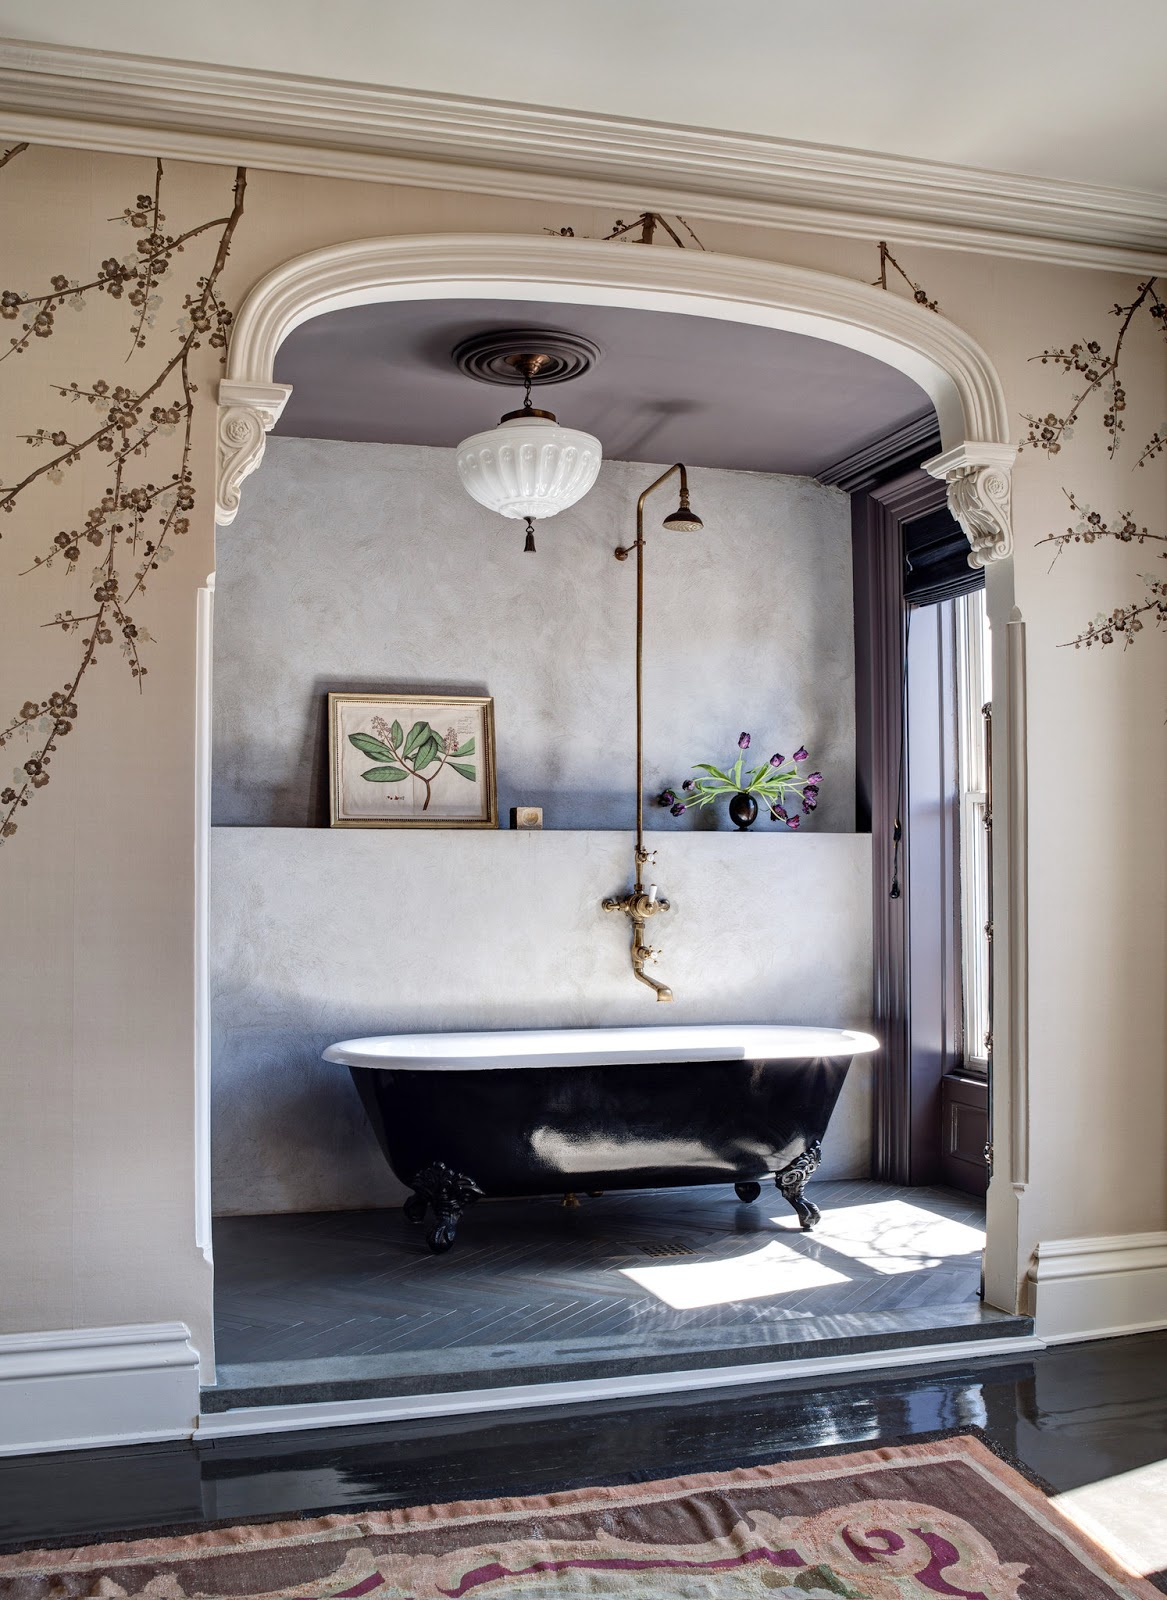 brooklyn-brownstone-great-homes-bathtub-antiques